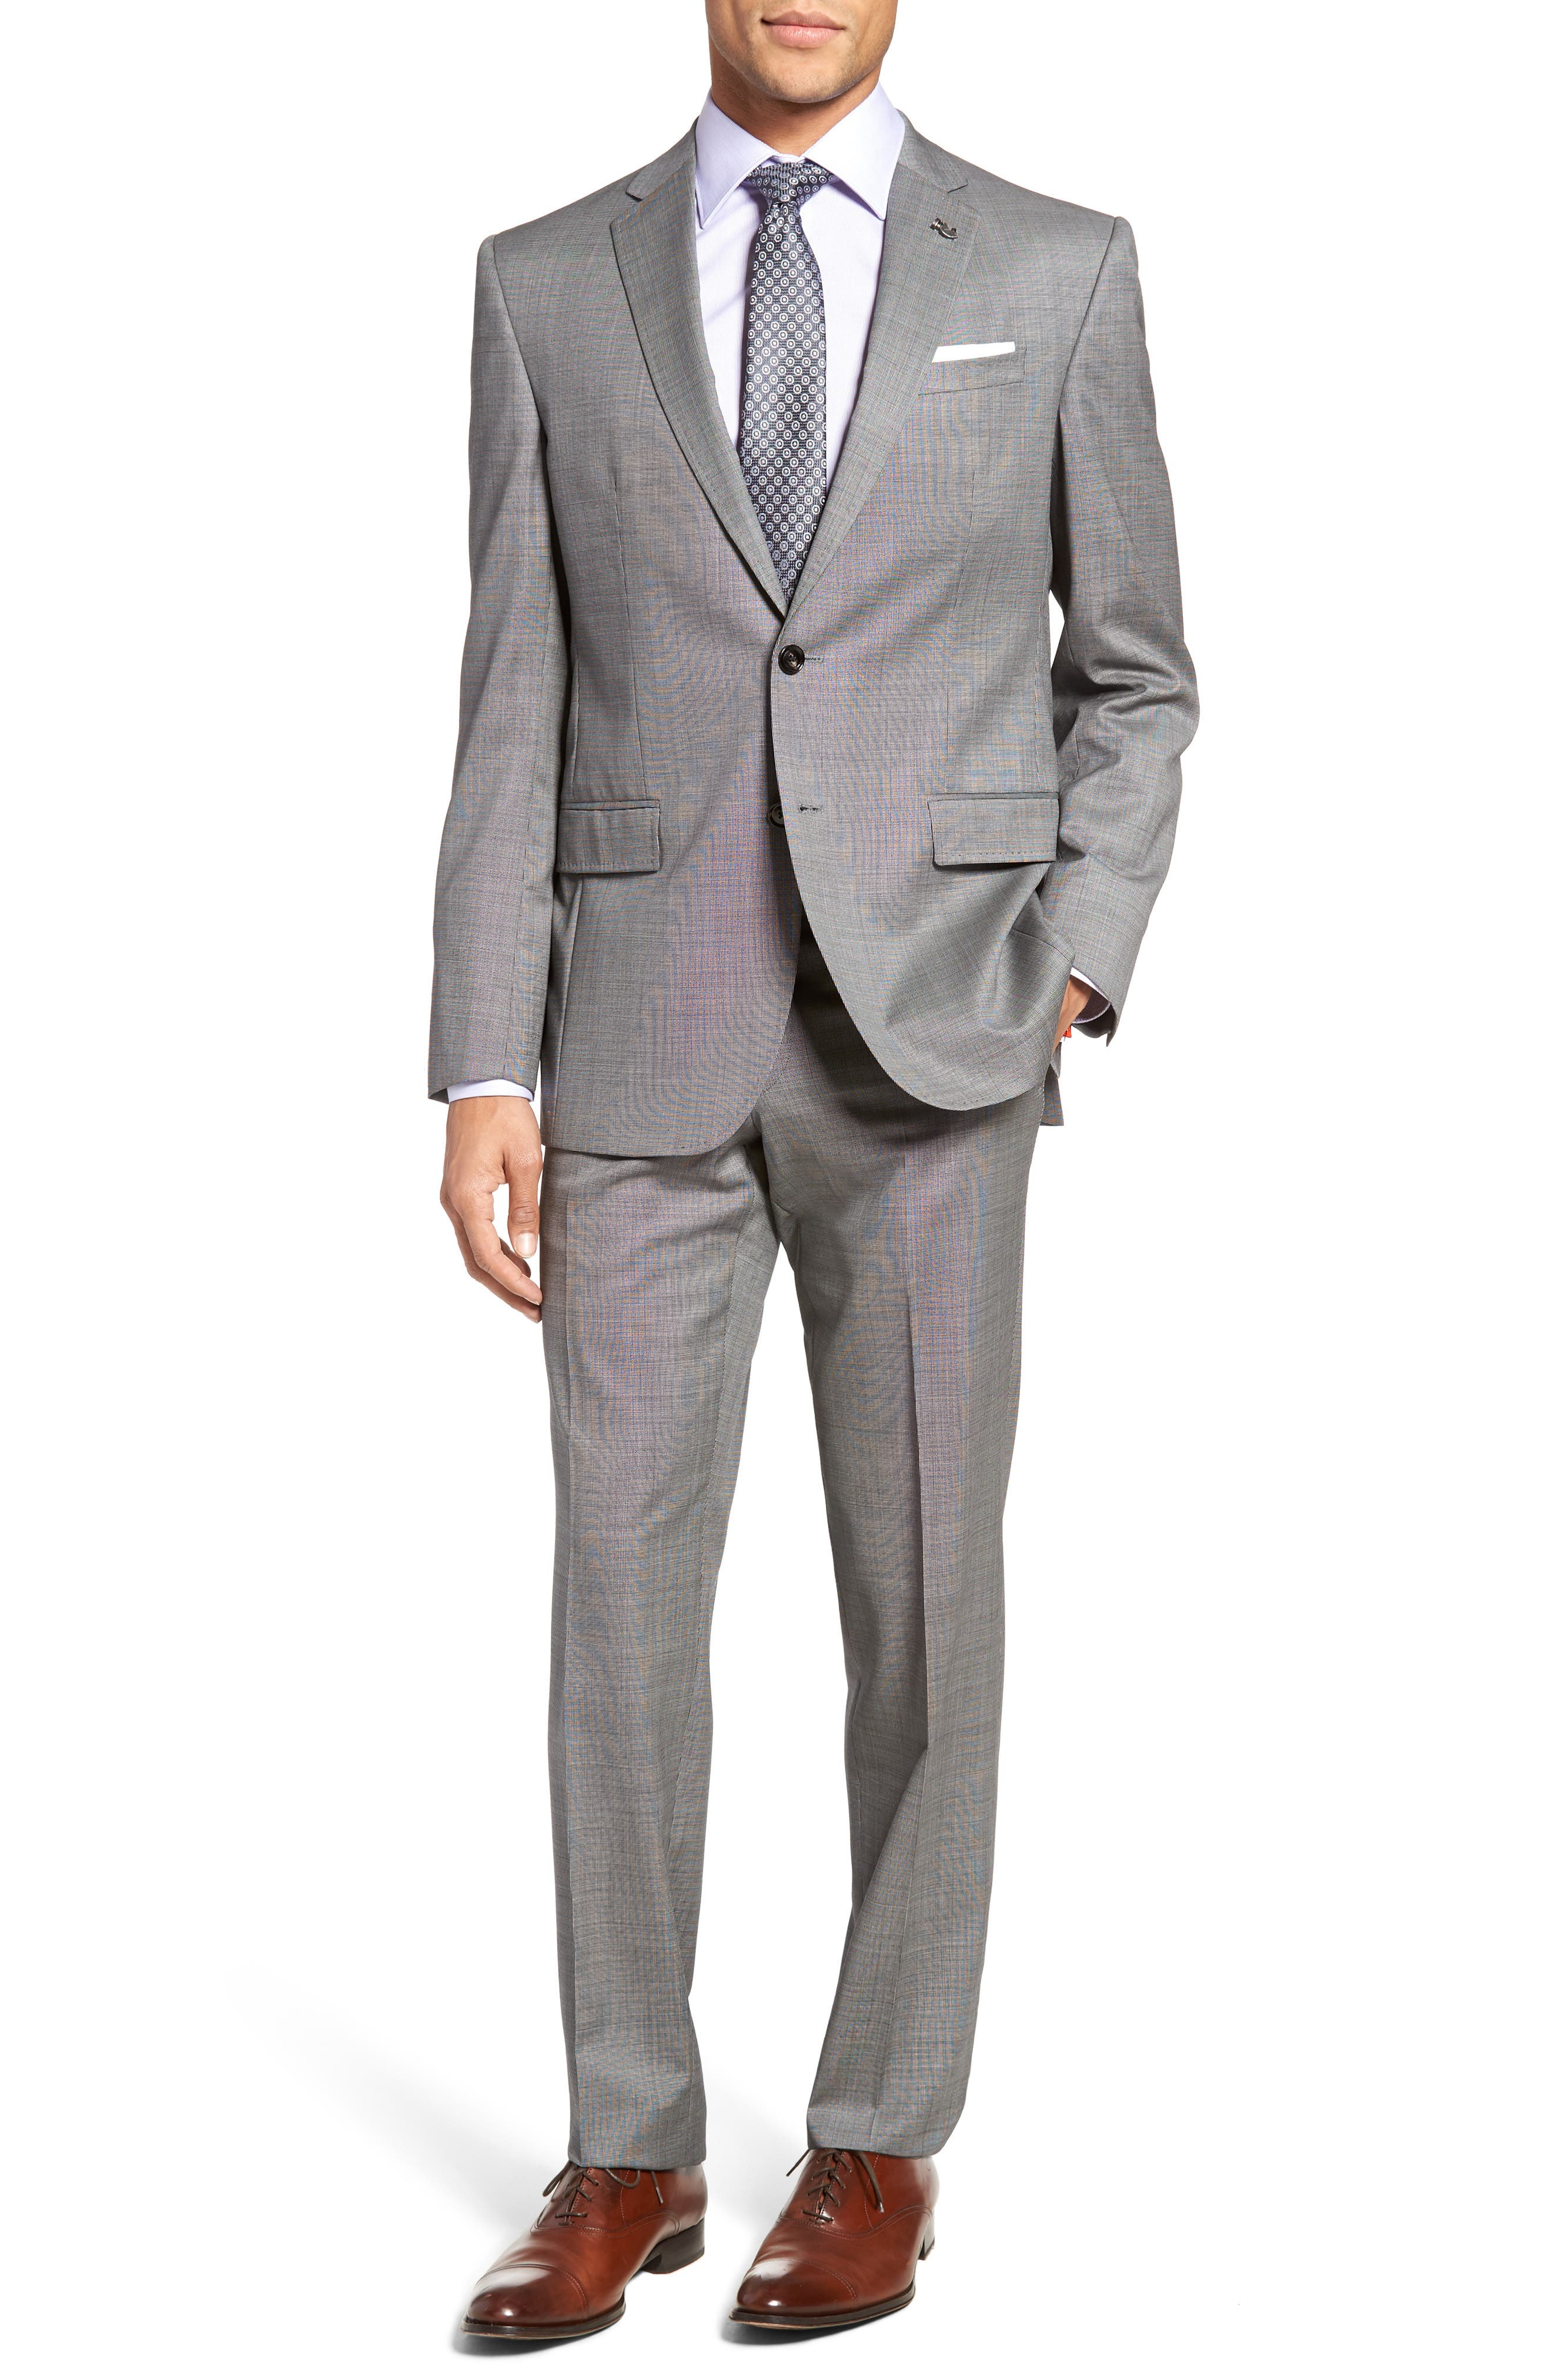 Jay Trim Fit Solid Wool Suit,                         Main,                         color, Light Grey